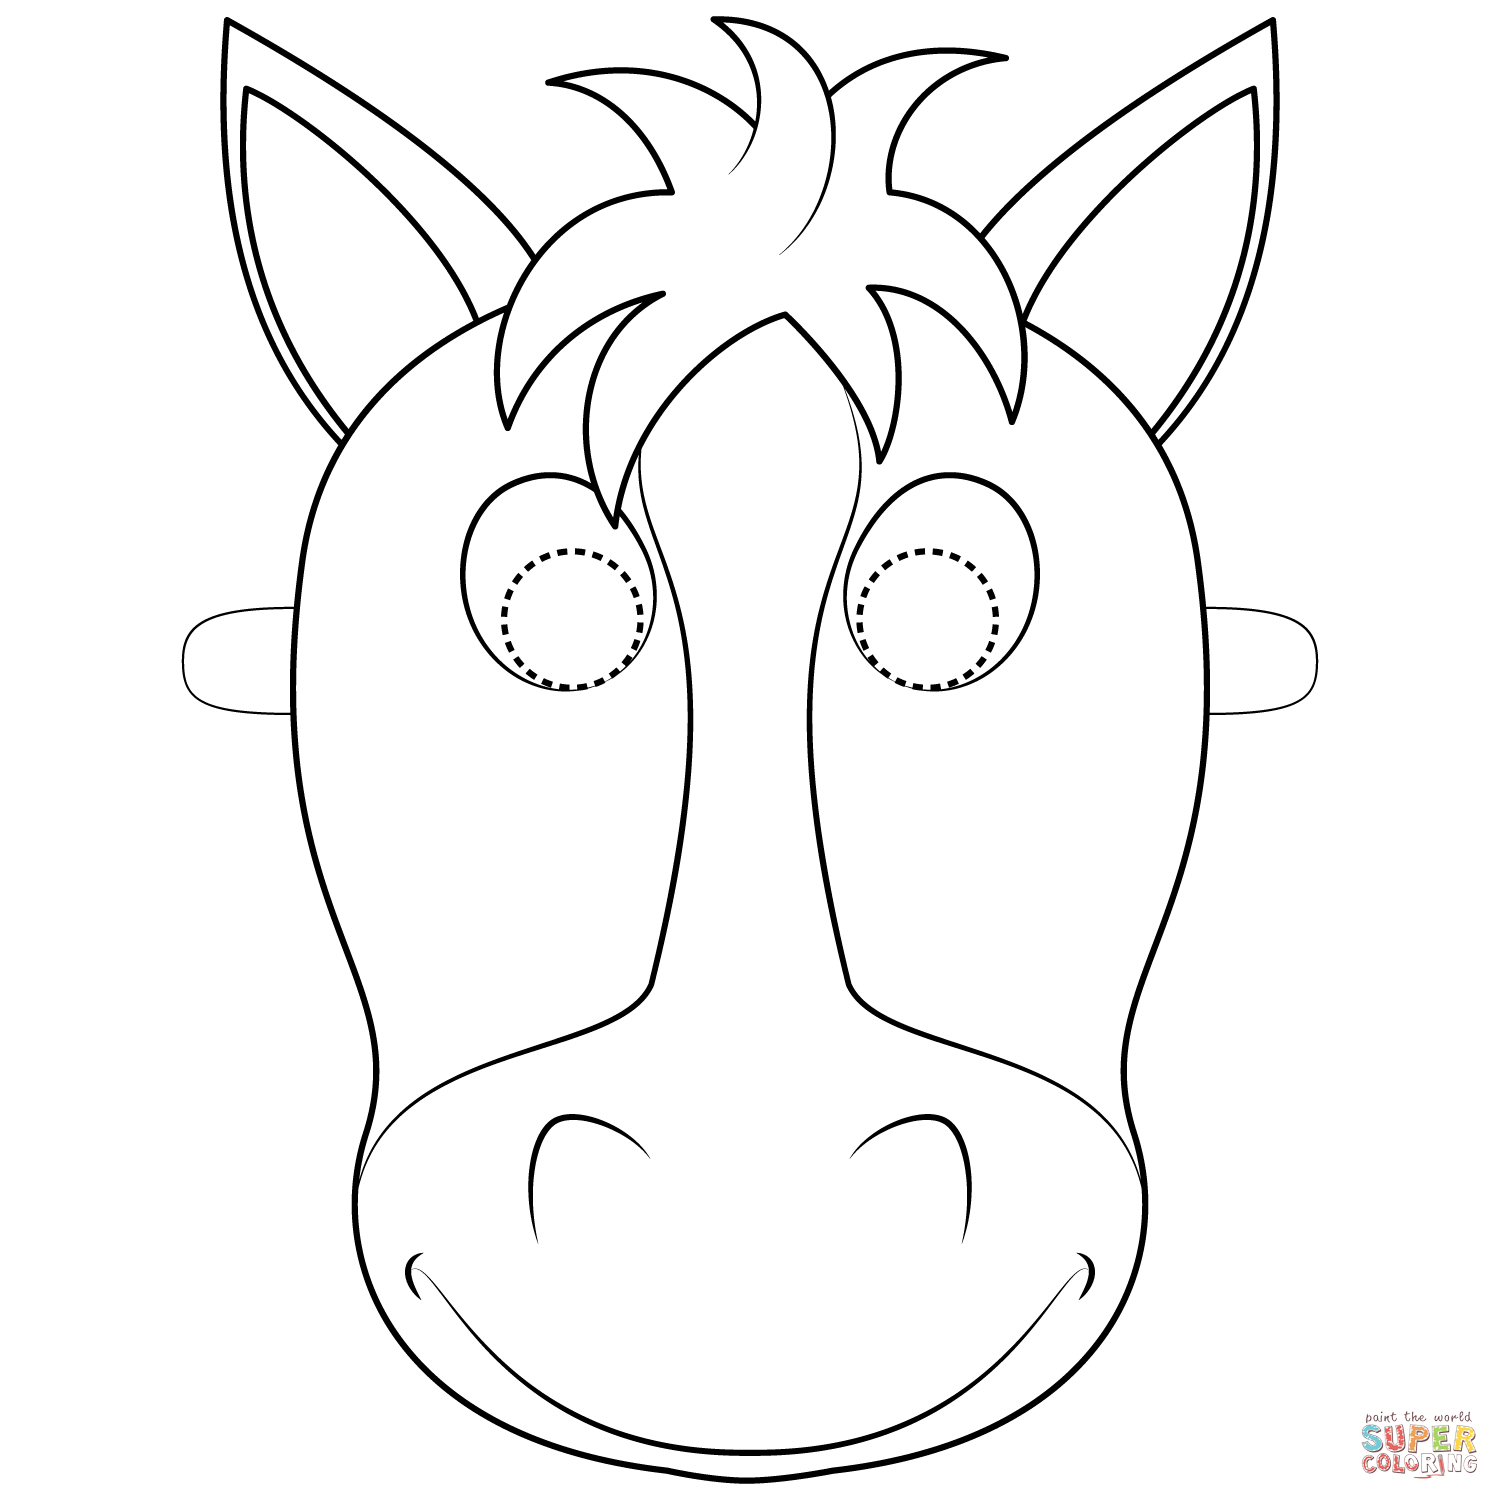 Horse Mask coloring page Free Printable Coloring Pages